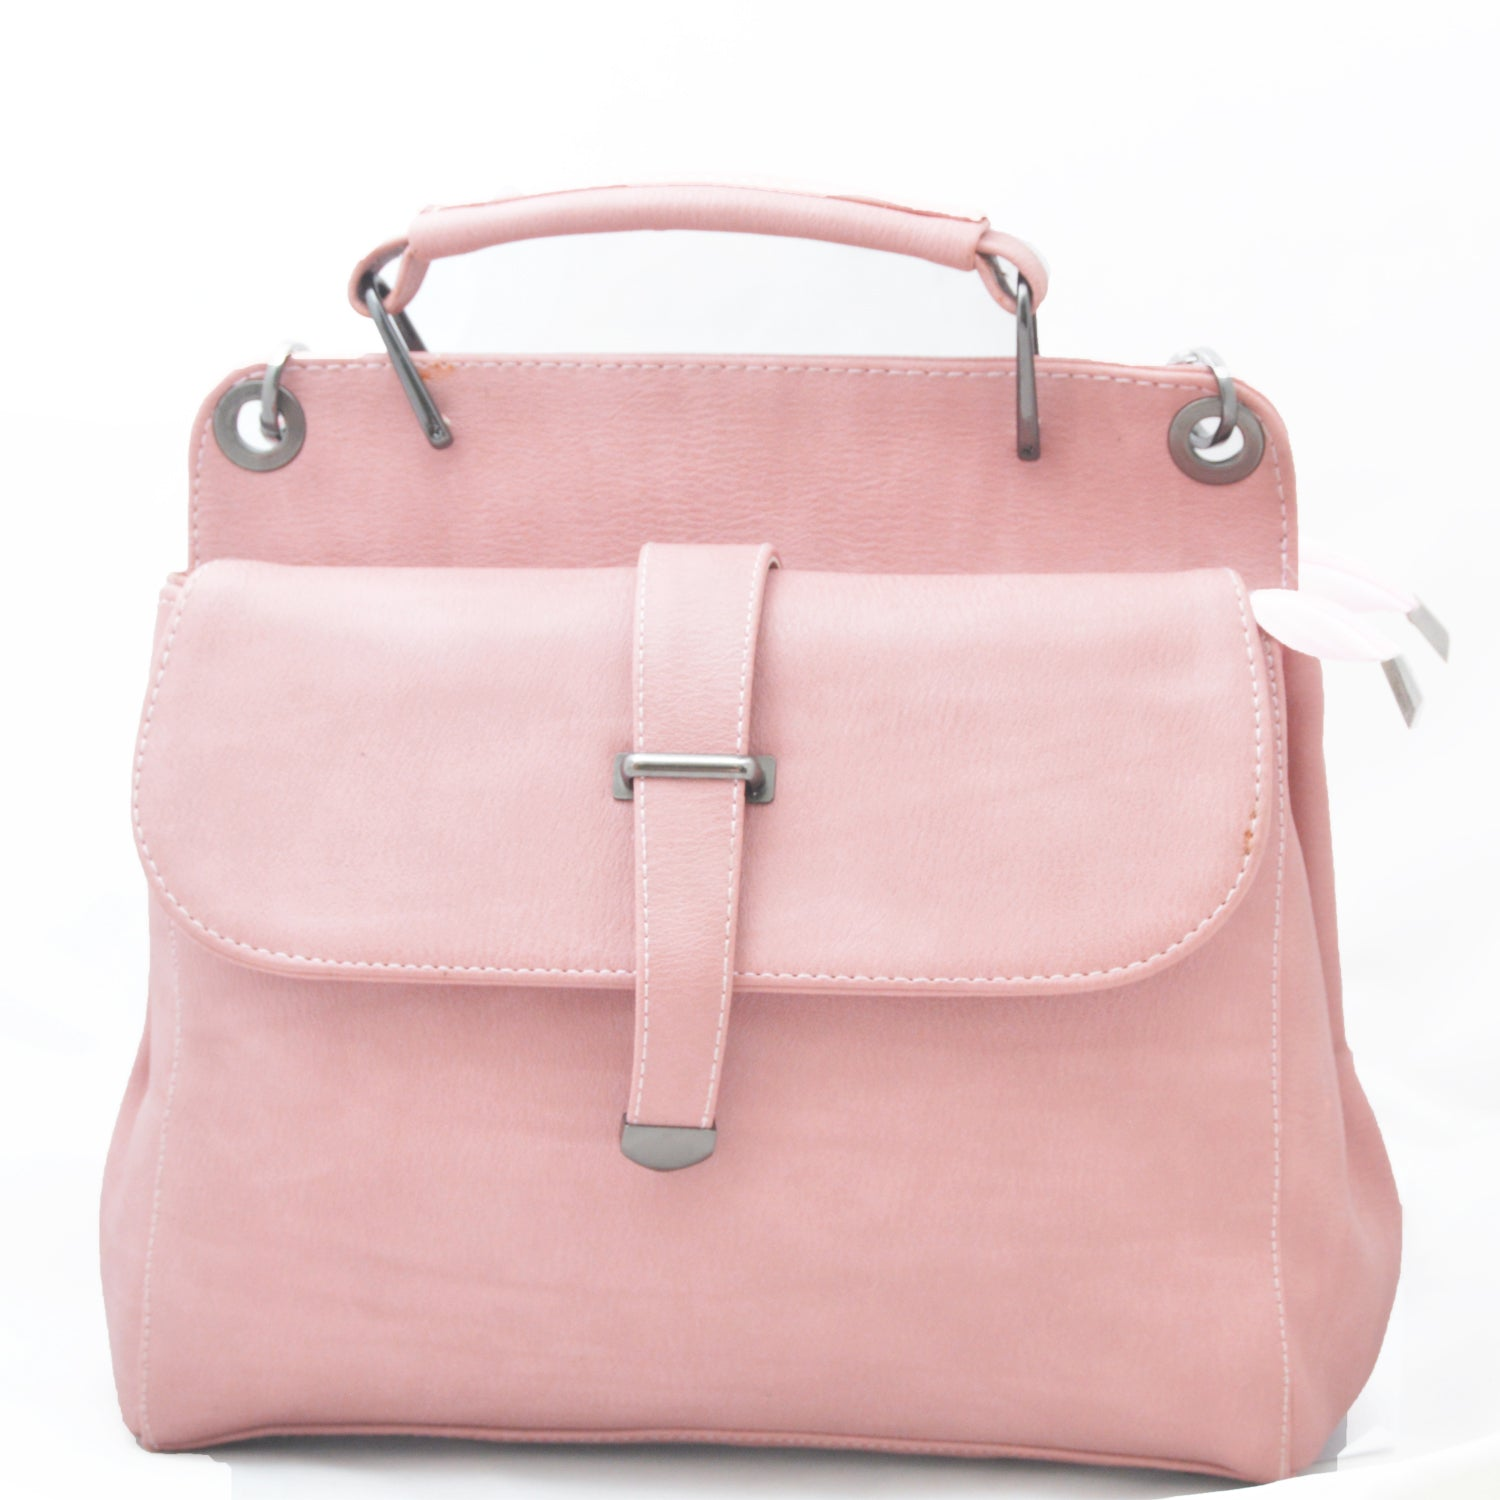 Cashmere Shoulder Bag